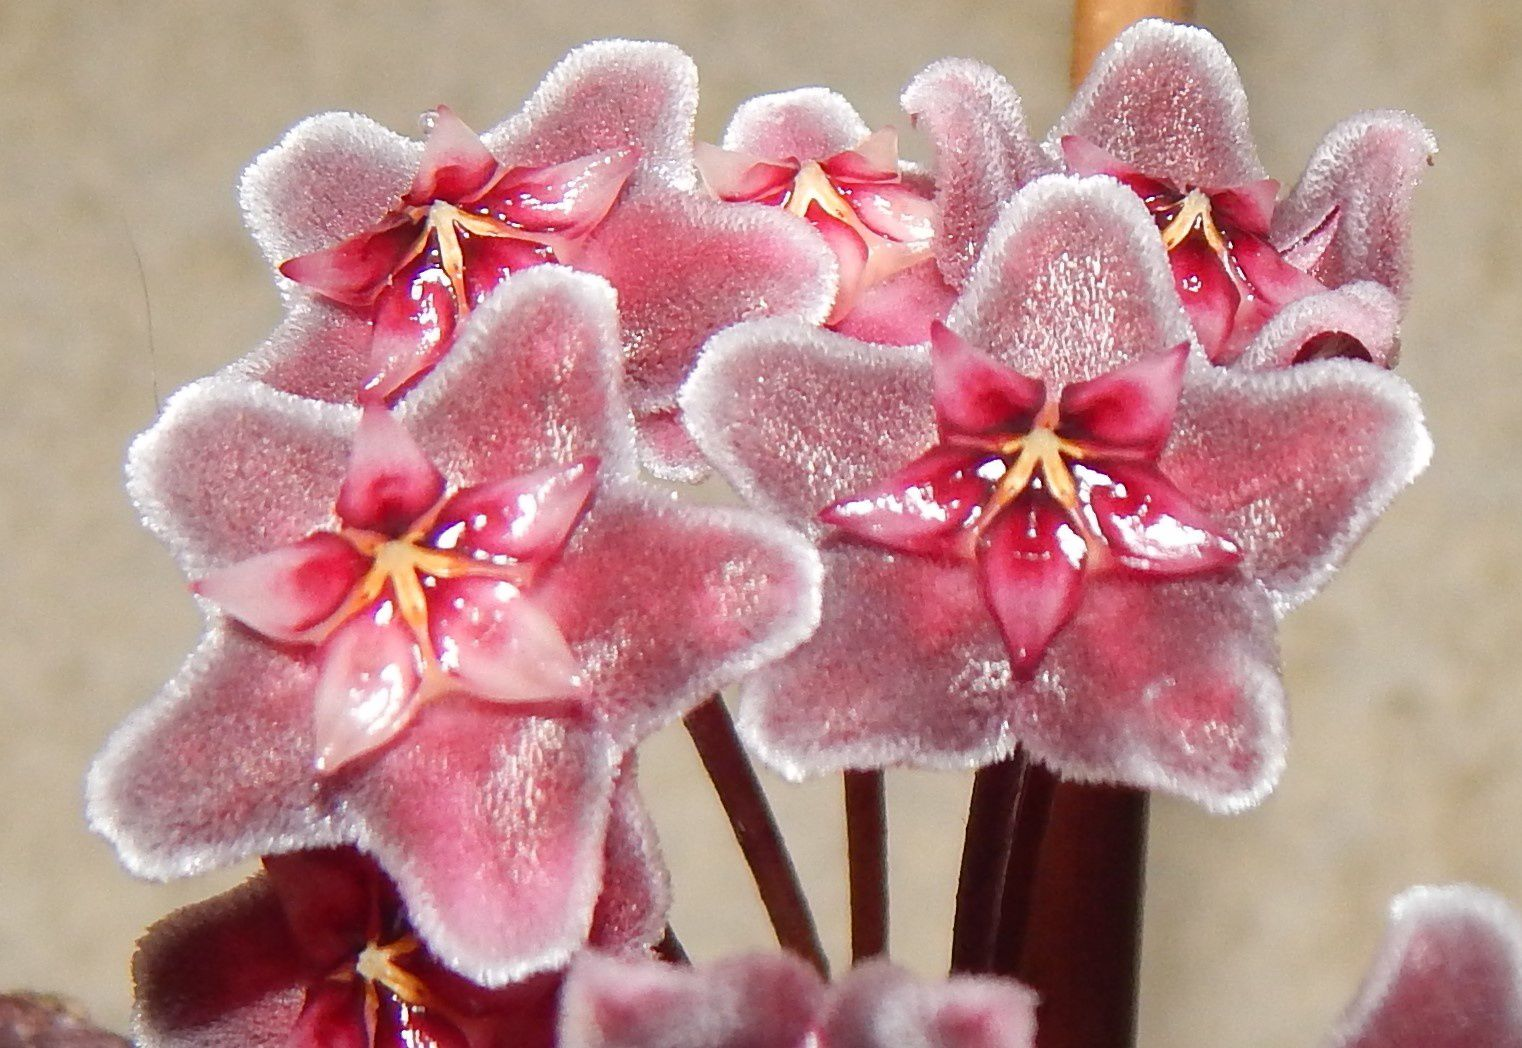 Hoya pubicalyx 'Royal Hawaïan Purple'